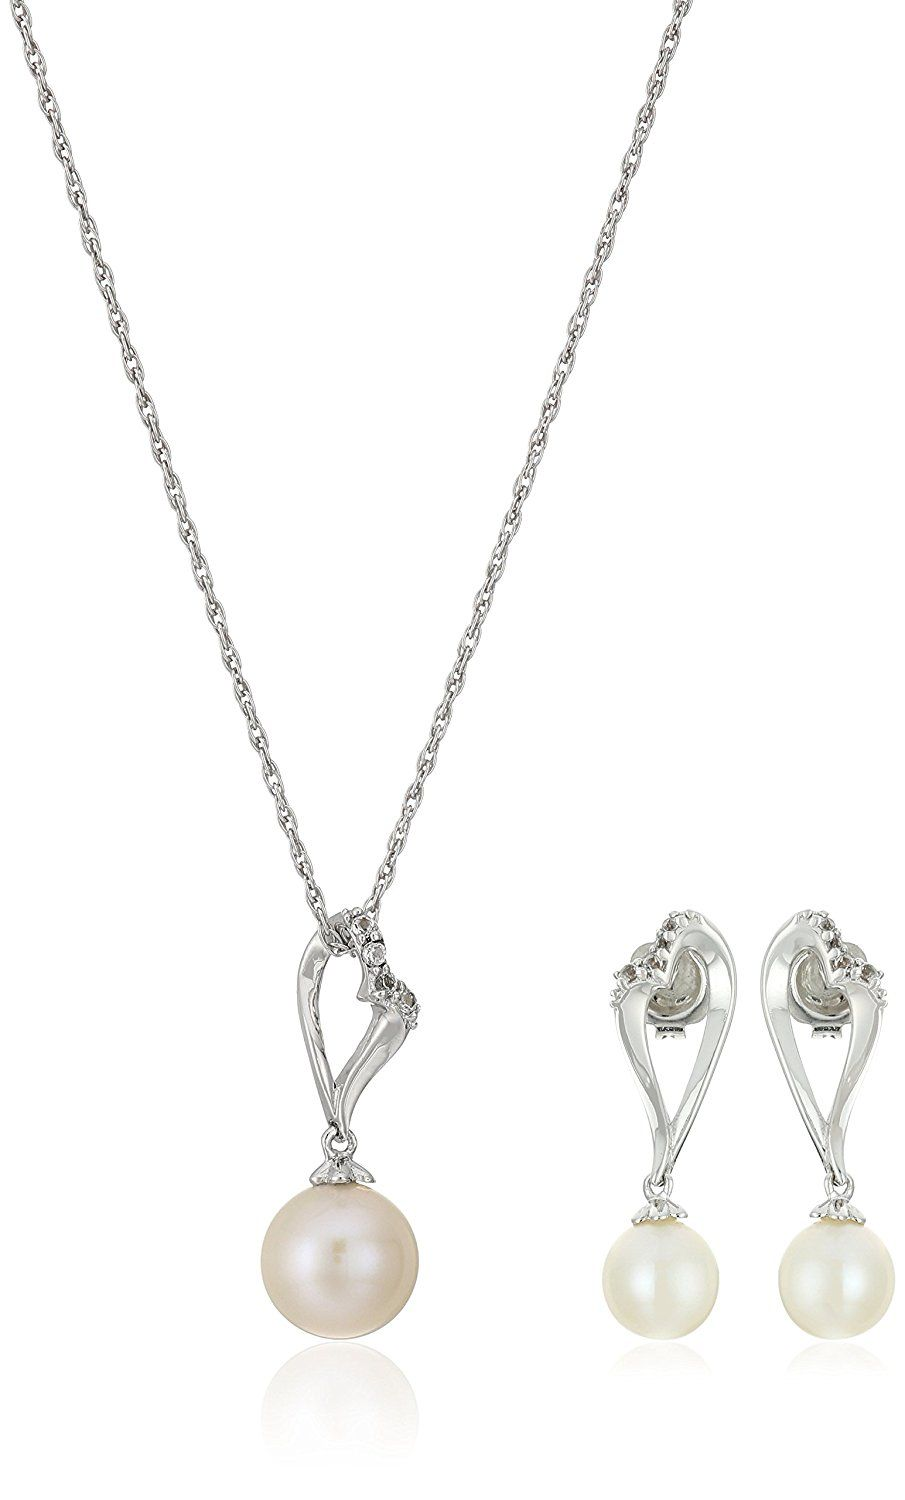 Sterling silver pearl and white topaz pendant necklace and earrings